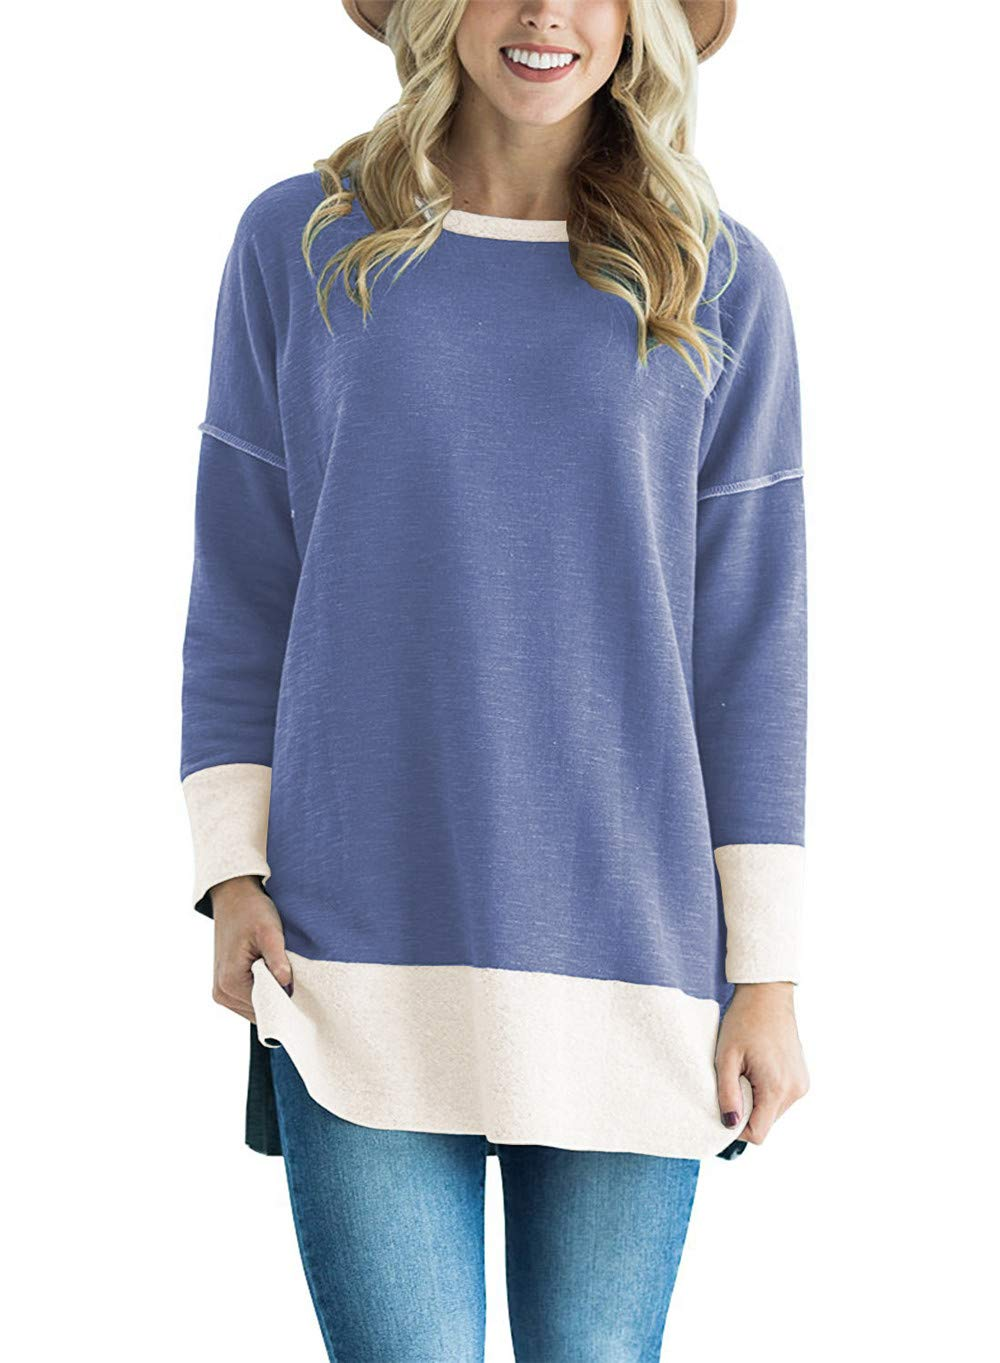 ChangNing Women's Casual Long Sleeve Tunic Tops Loose Color Block Sweatshirt Pullover Blouse with Side Slit